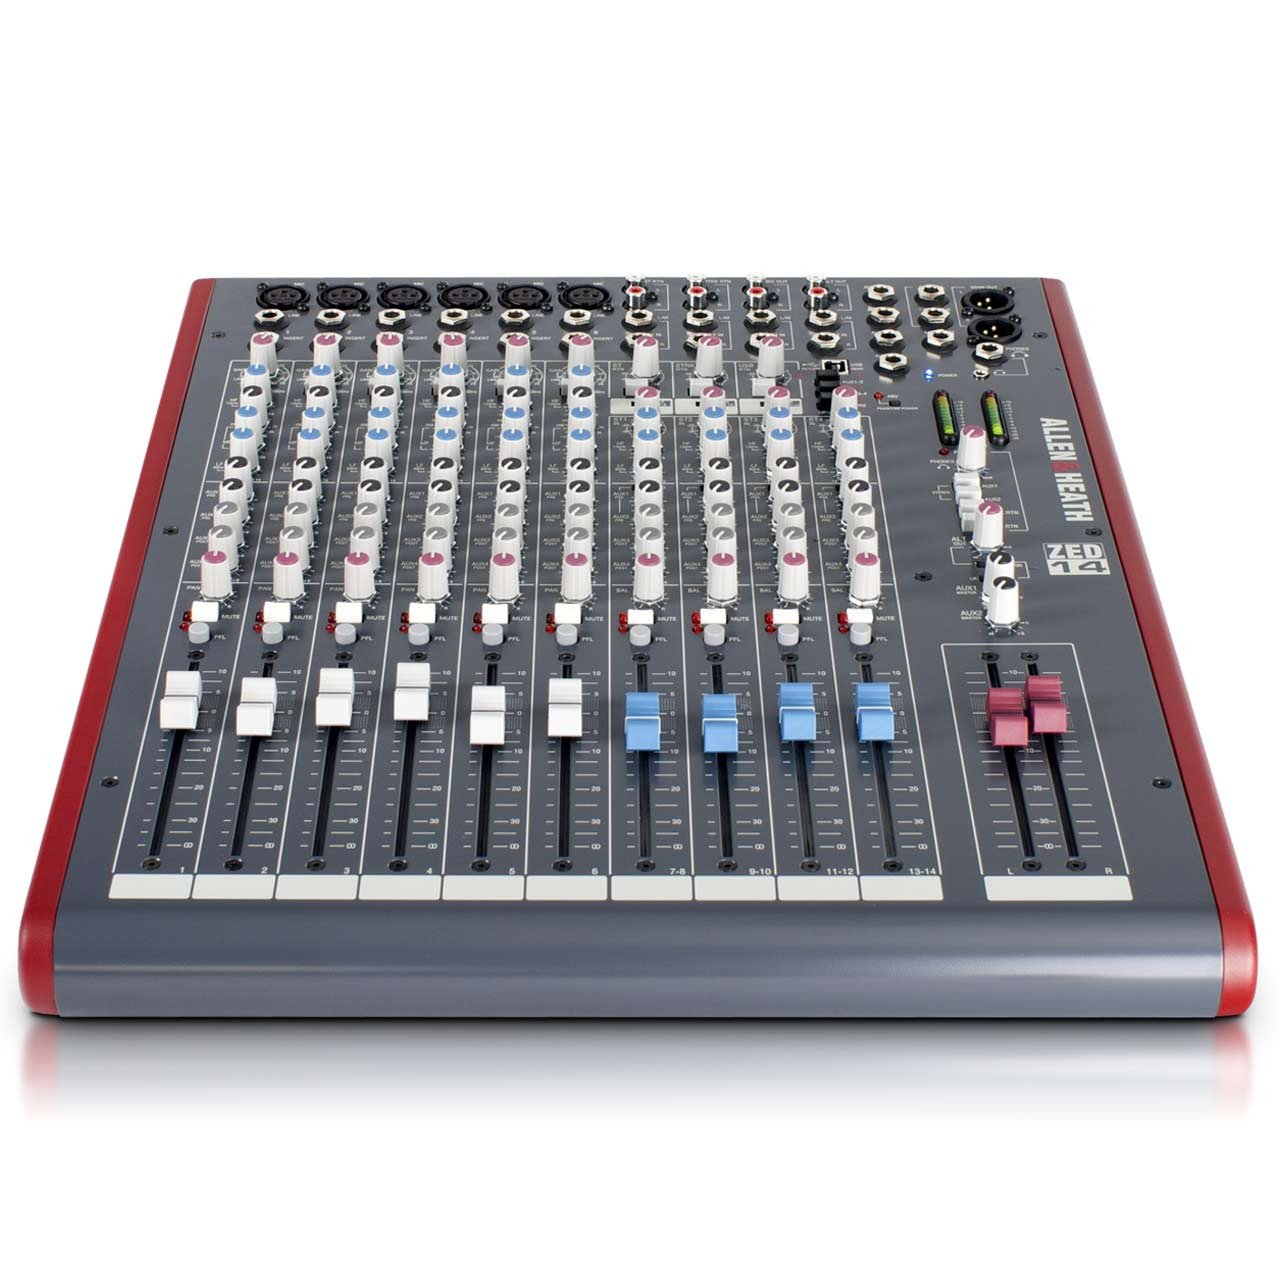 Analog Mixers - Allen & Heath ZED-14 - Analogue Mixer With USB